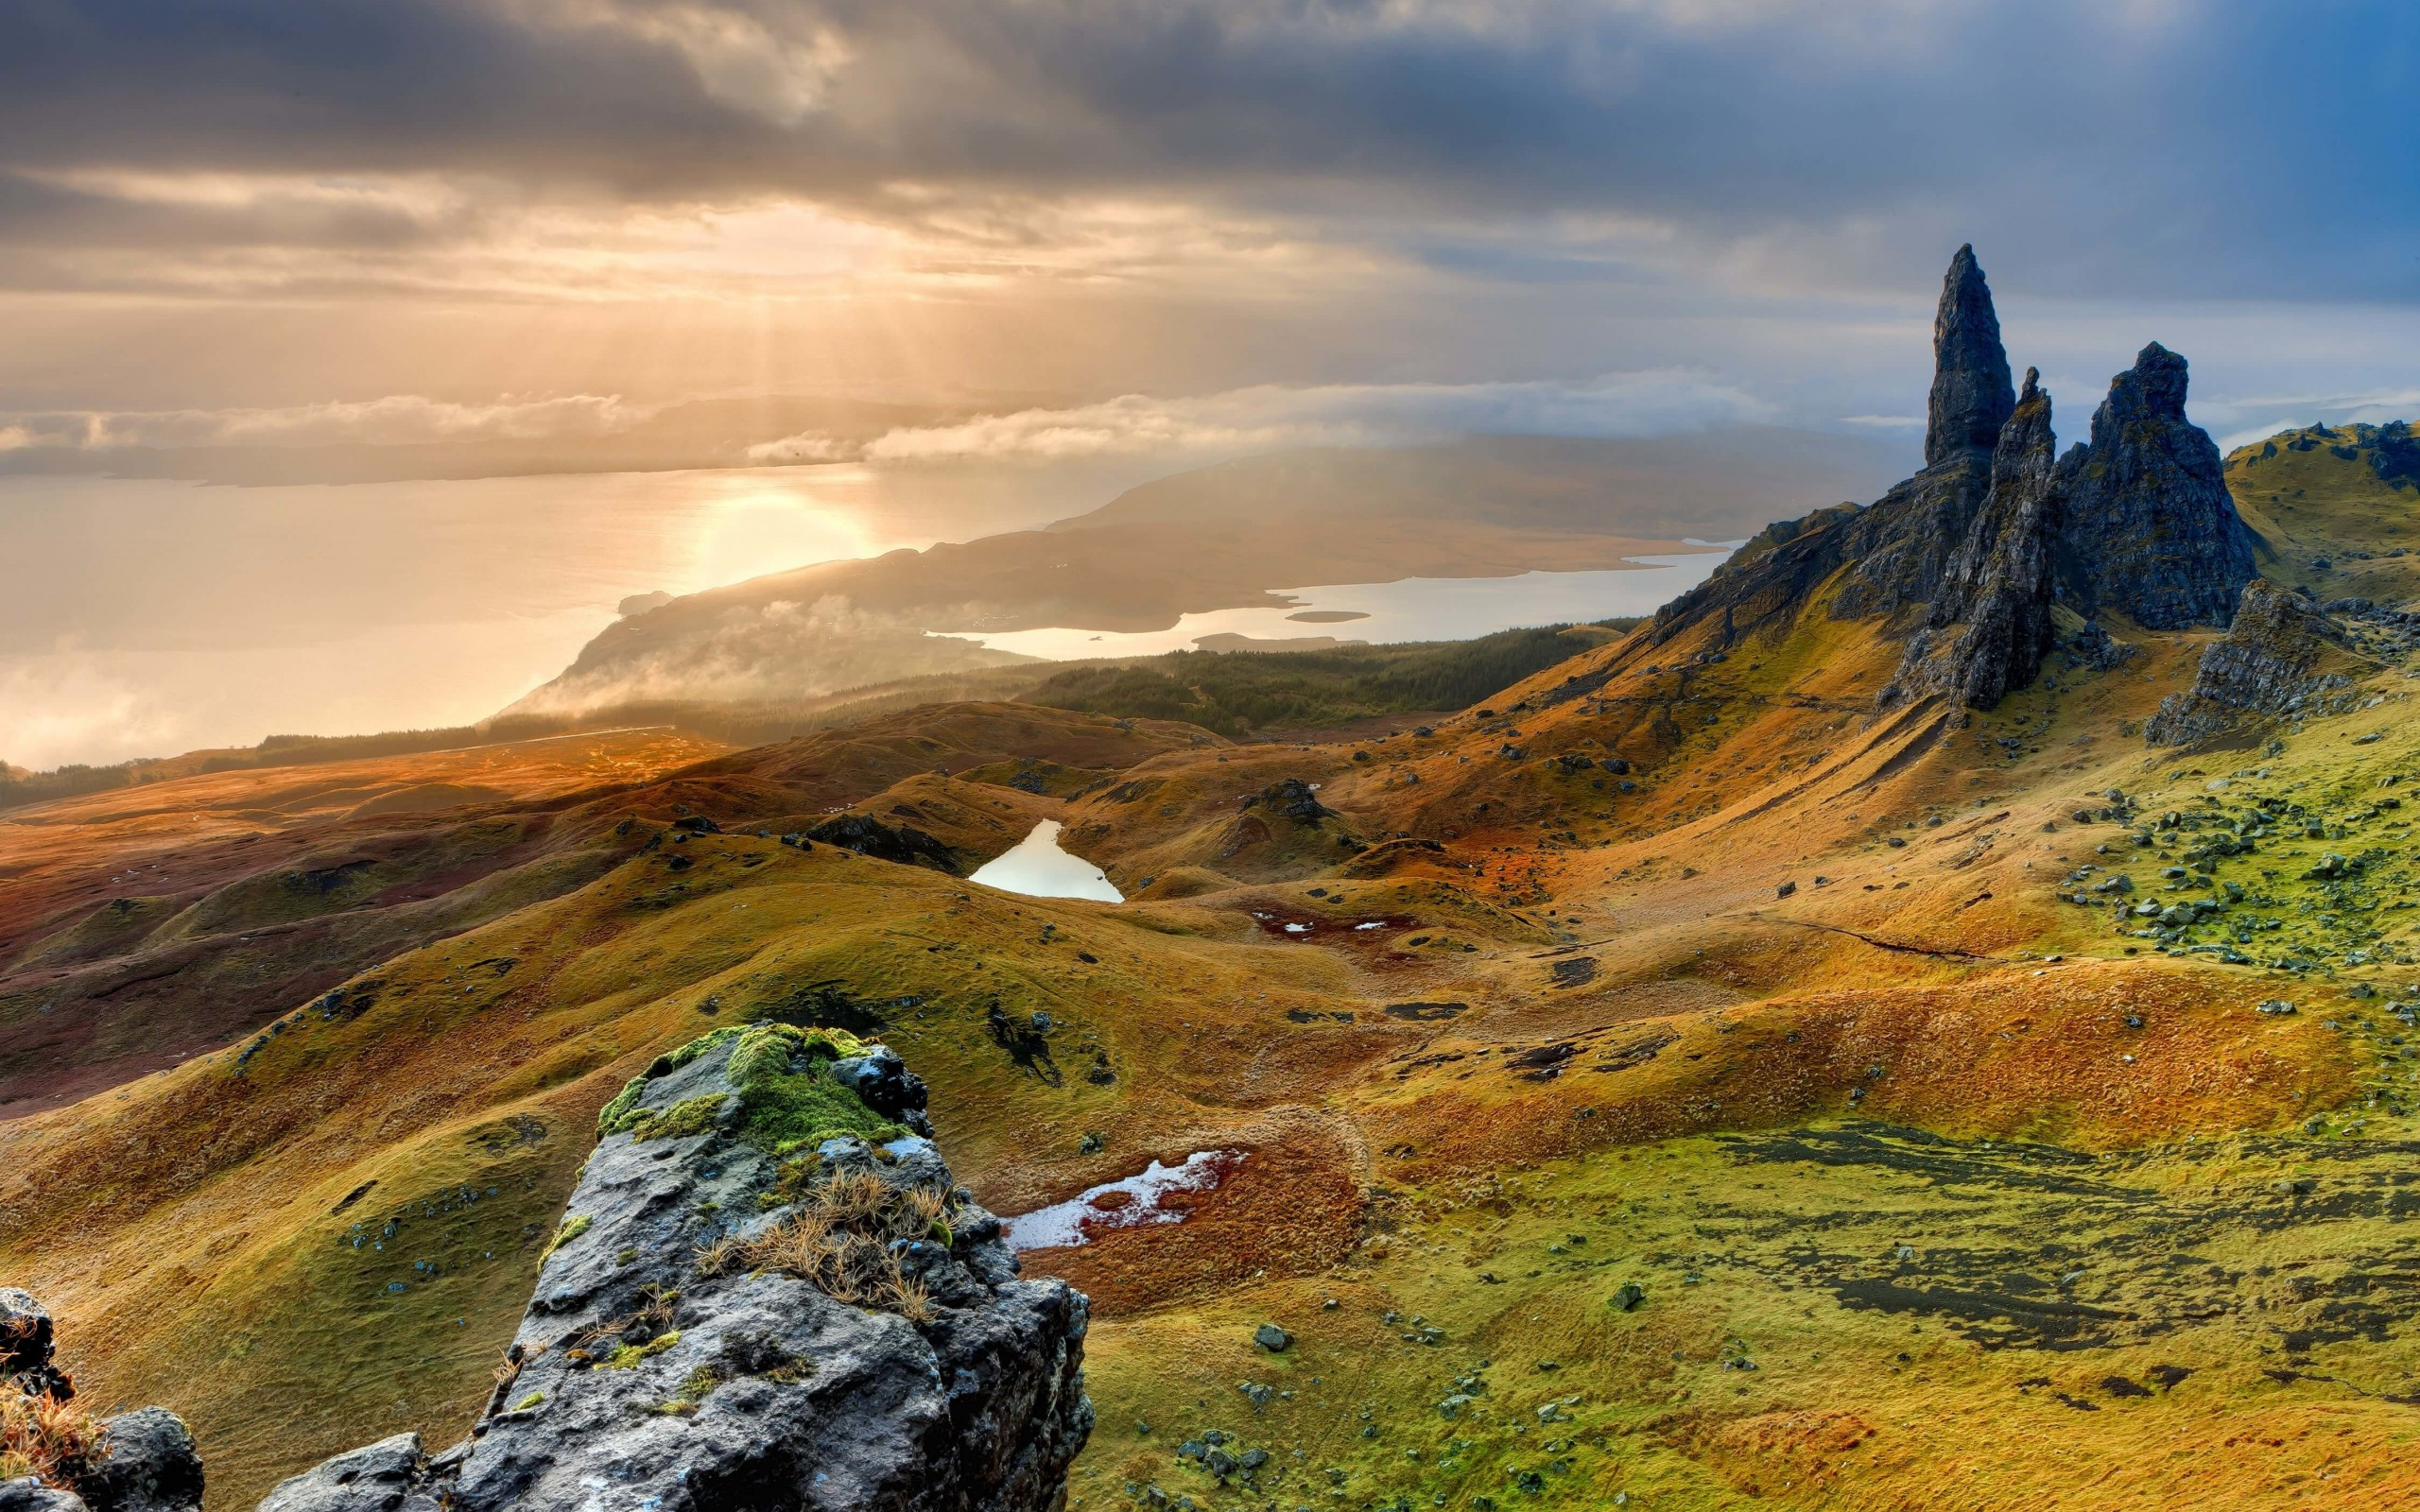 The Old Man of Storr, Isle of Skye, Scotland Wallpaper for Desktop 2560x1600